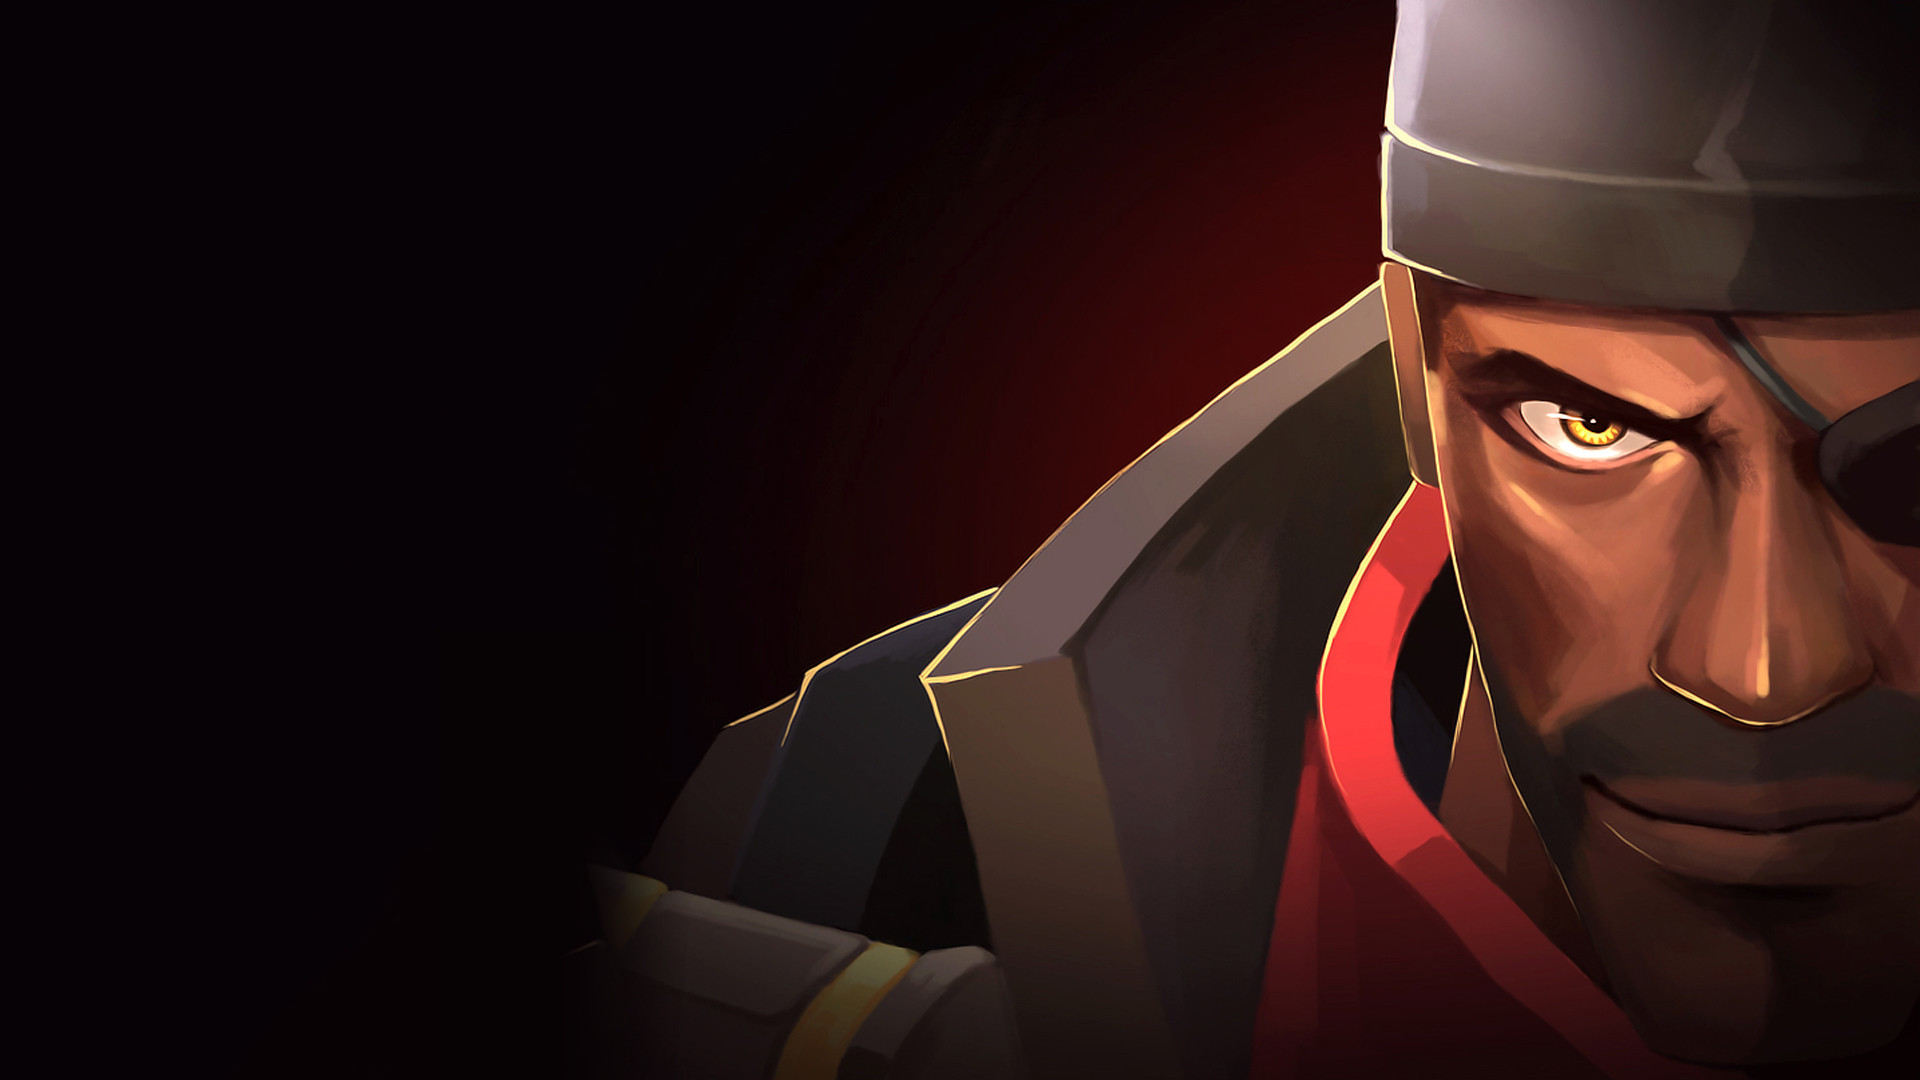 Red Demoman HD Wallpaper Background Image 1920x1080 ID 1920x1080